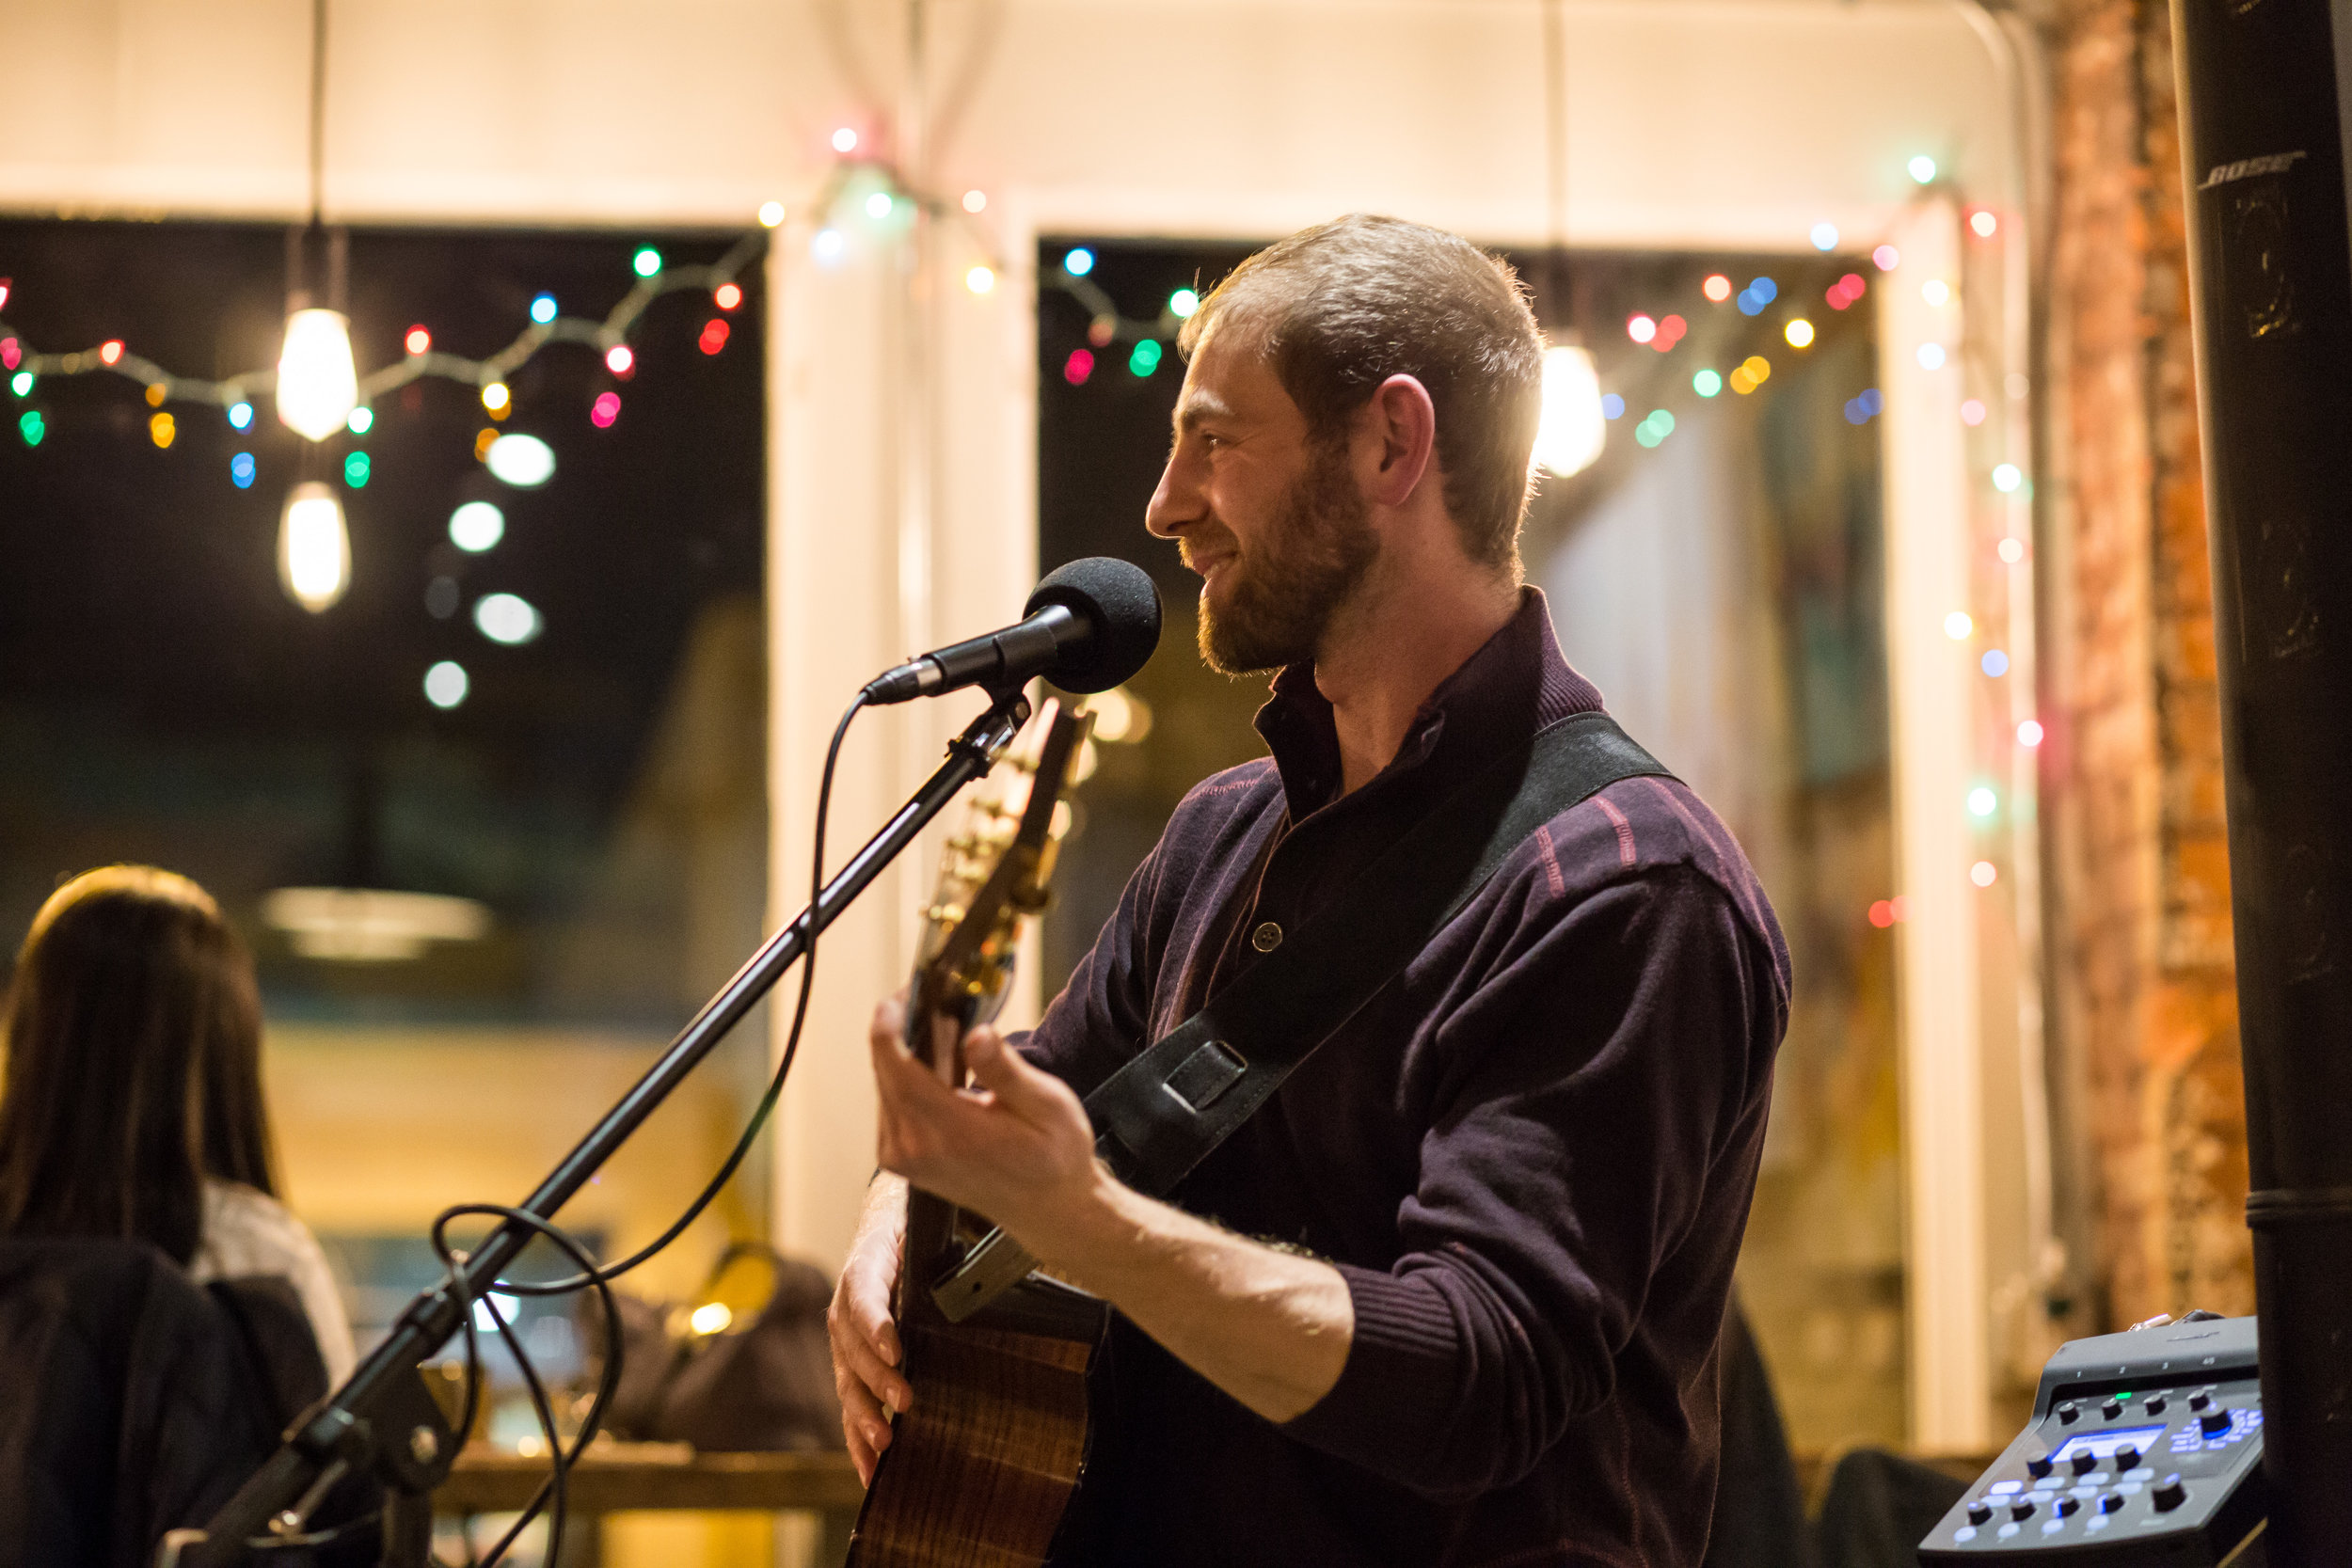 Singer/songwriter  Mike Bass  at Blue Owl Coffee. Copyright 2017 Tania Watt Creative, LLC.